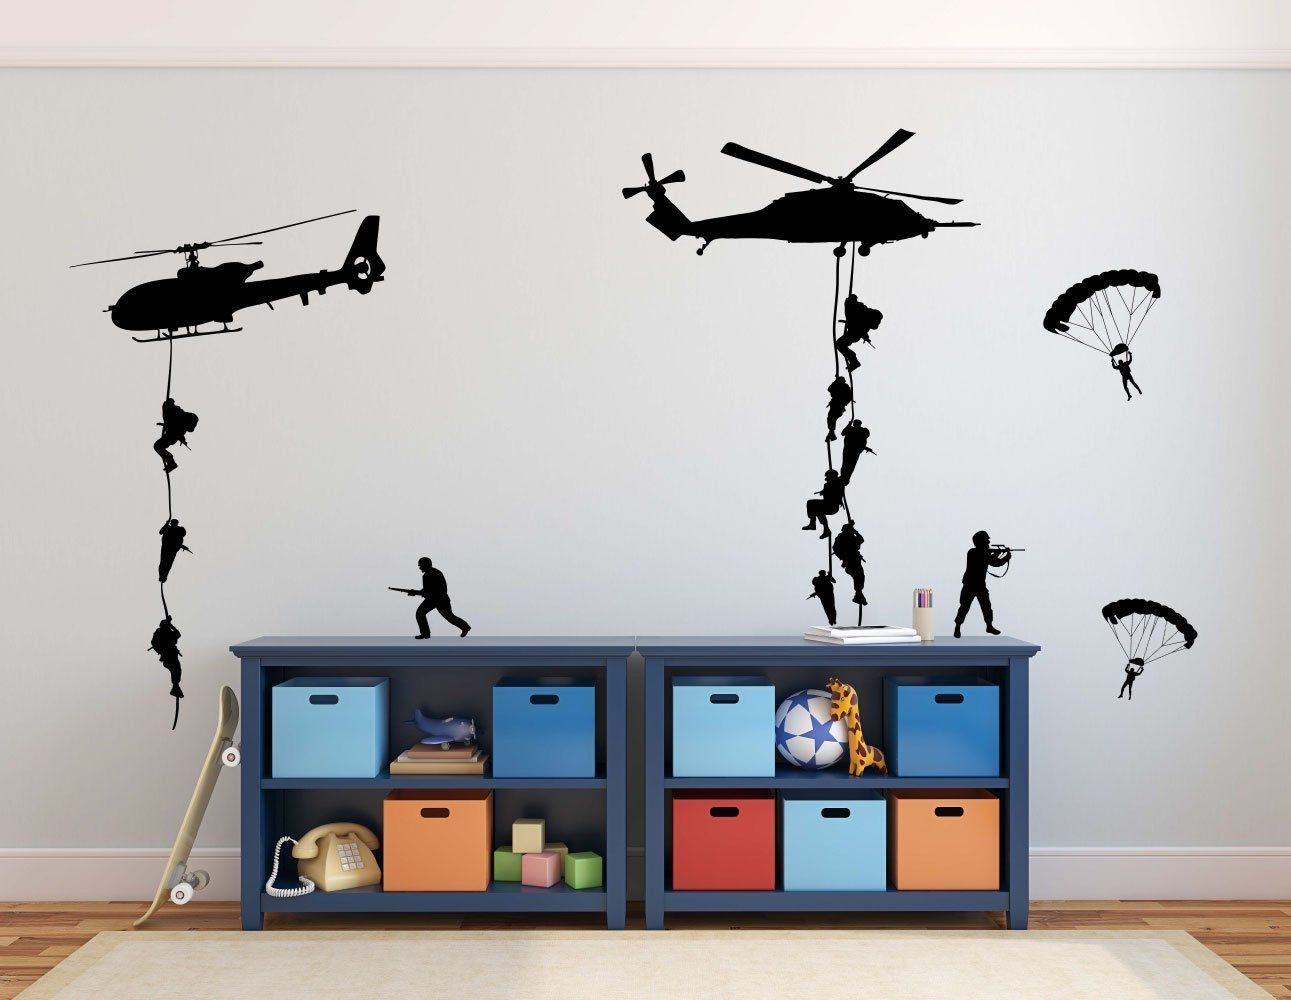 Army Wall Decals Soldiers Parachuting From Helicopters For Kids - Portal 2 wall decalsbest wall decals images on pinterest